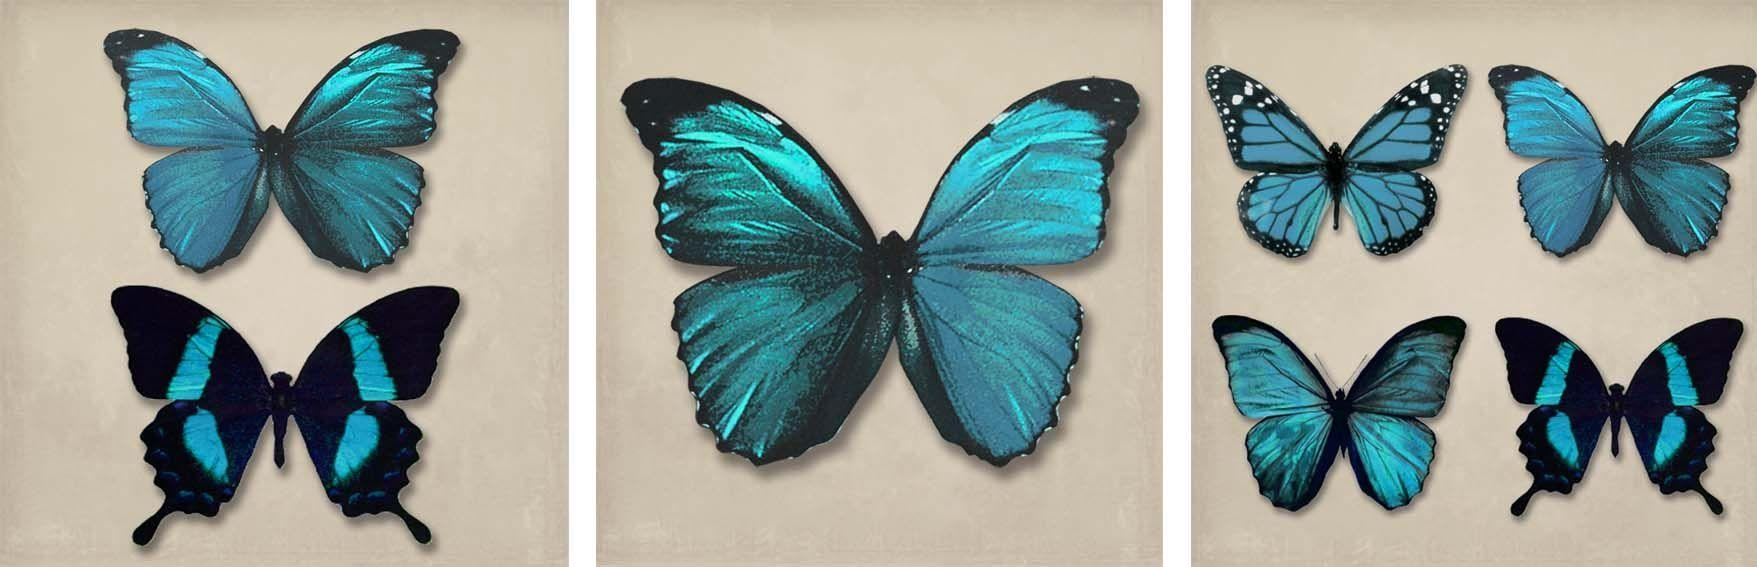 Teal Butterflies Set Of 3 Canvasesarthouse : Wallpaper Direct Regarding Butterfly Canvas Wall Art (View 18 of 20)